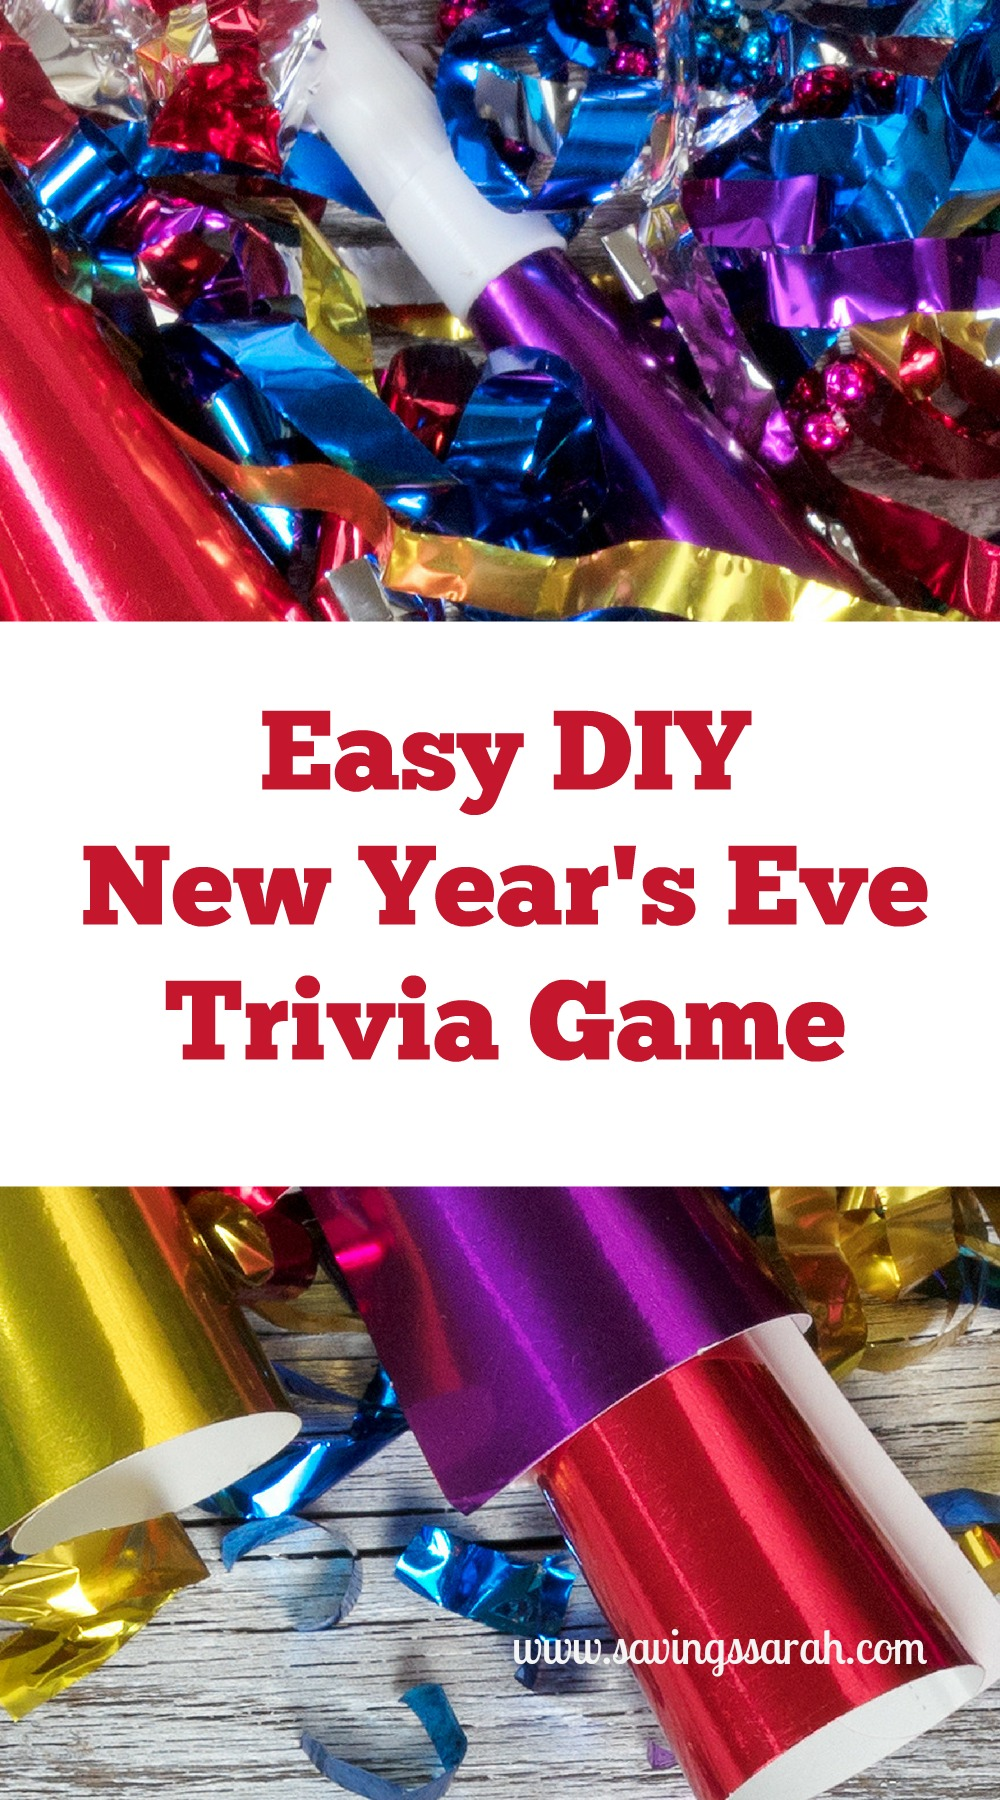 DIY New Year's Eve Party Trivia Game - Earning and Saving ...